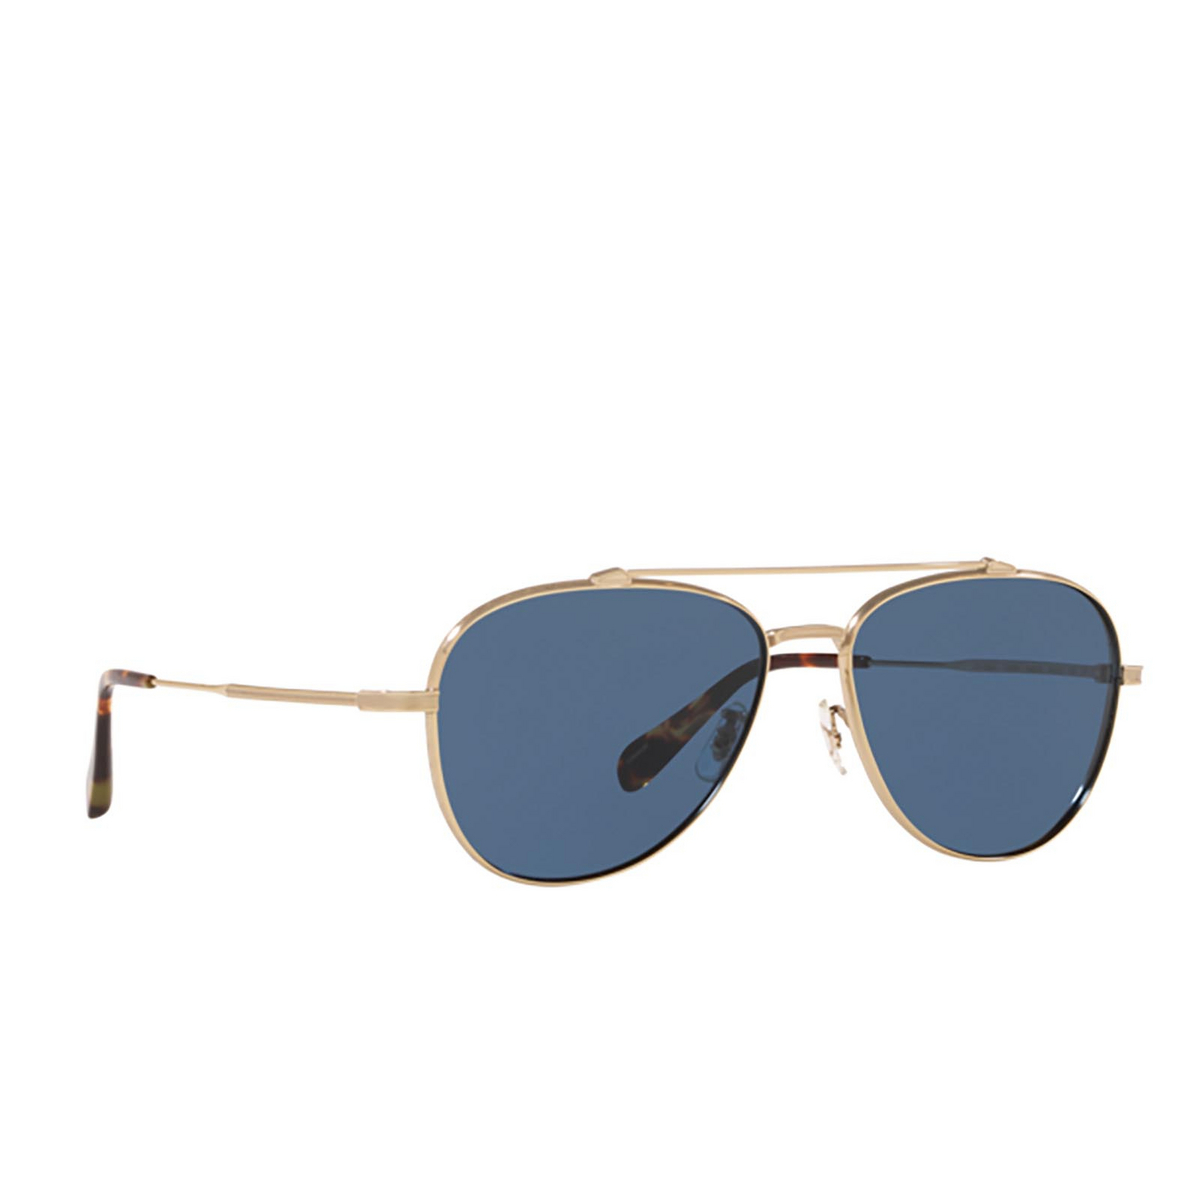 Oliver Peoples® Aviator Sunglasses: Rikson OV1266ST color Soft Gold 503580 - three-quarters view.